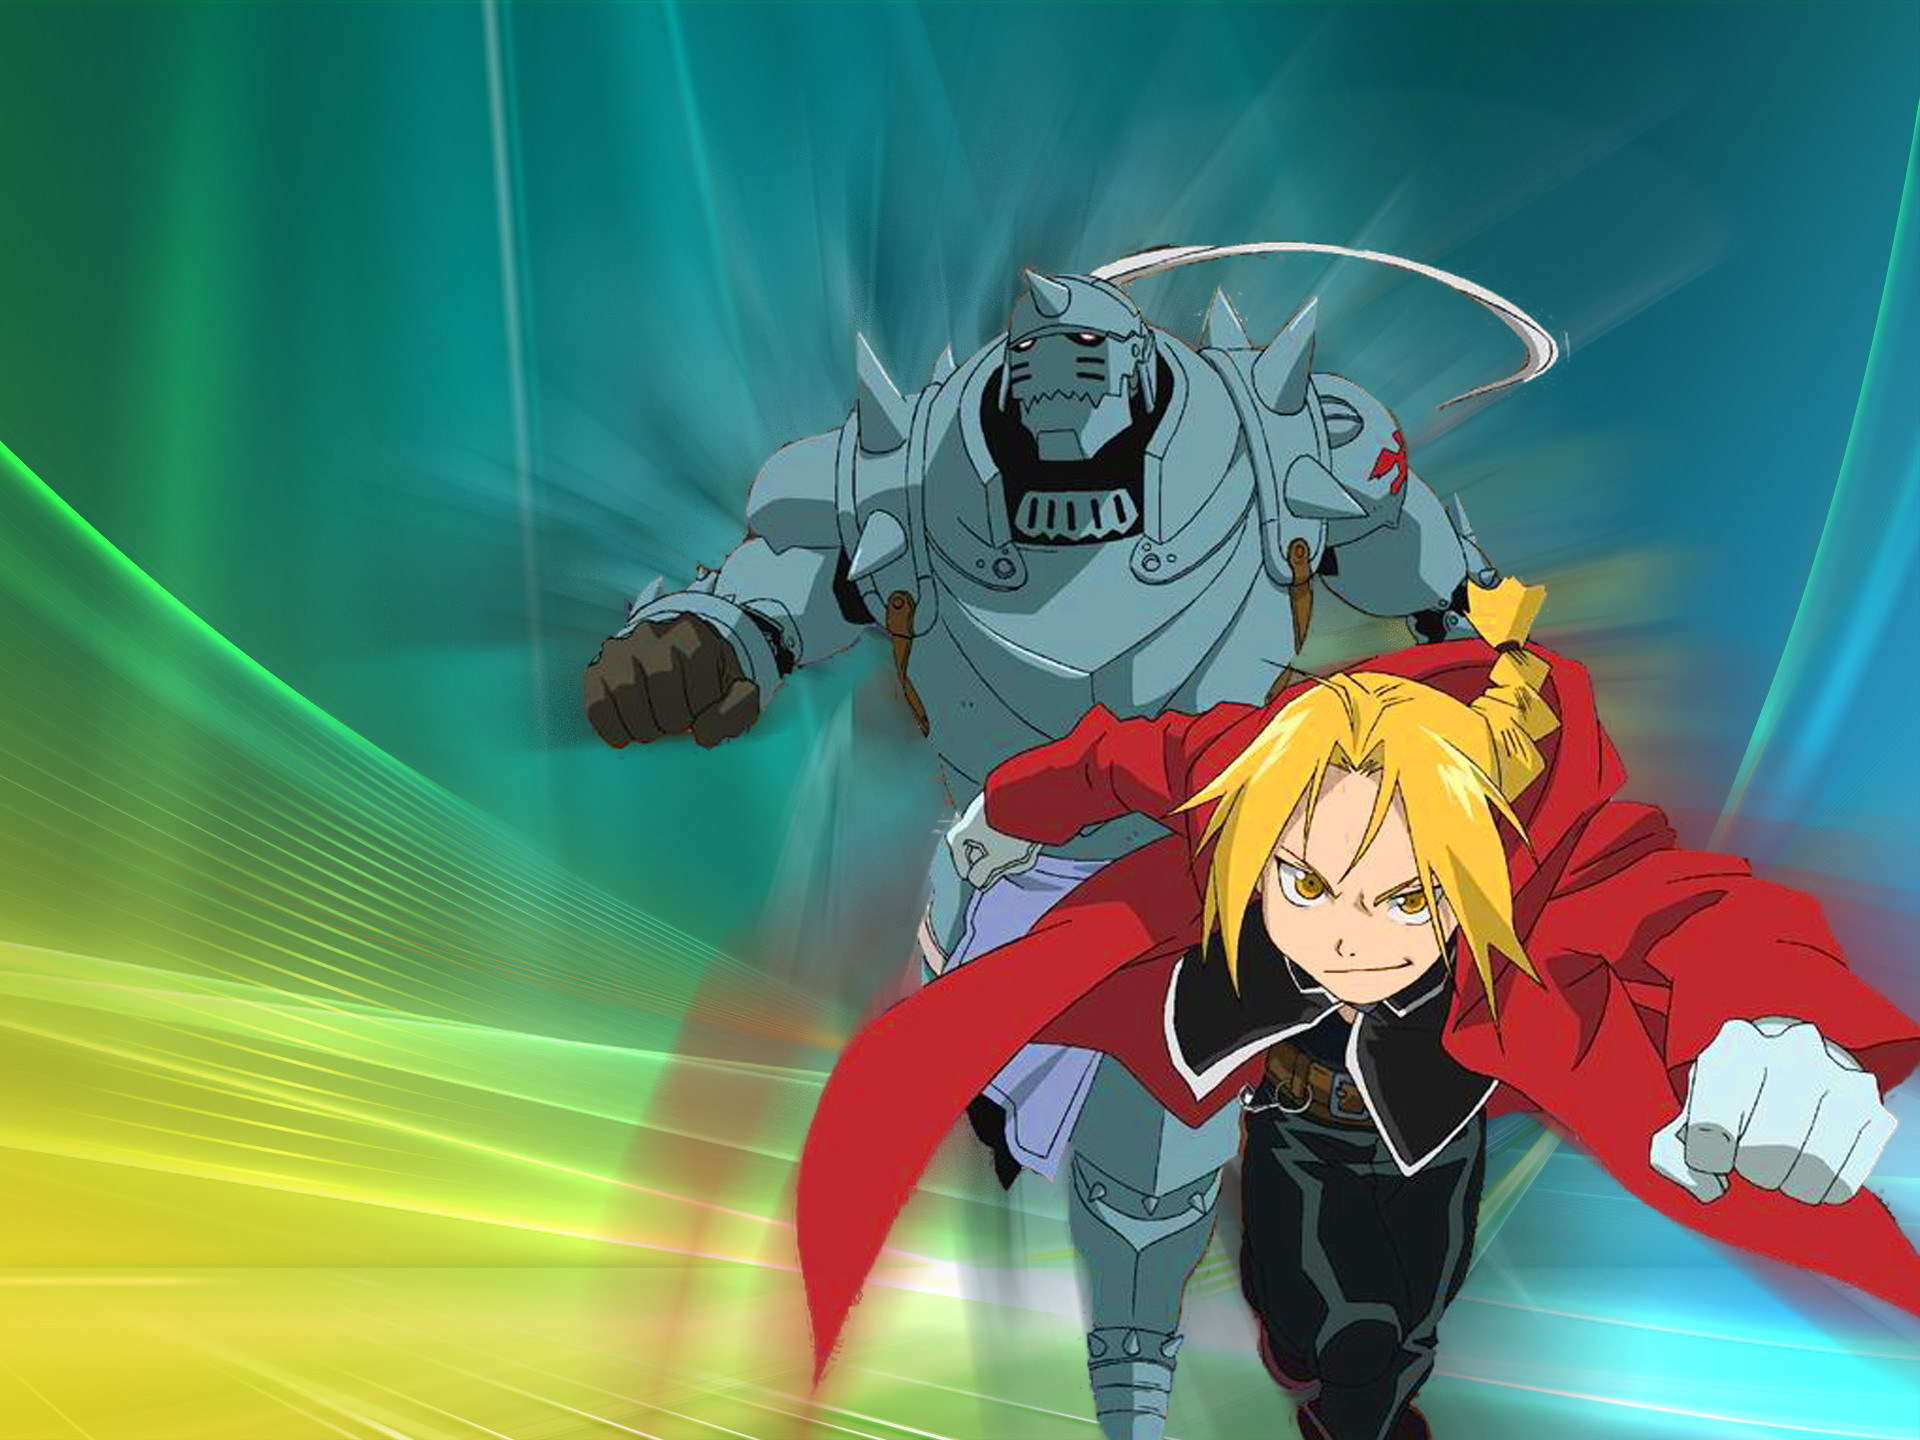 fma windows vista full metal alchemist wallpaper